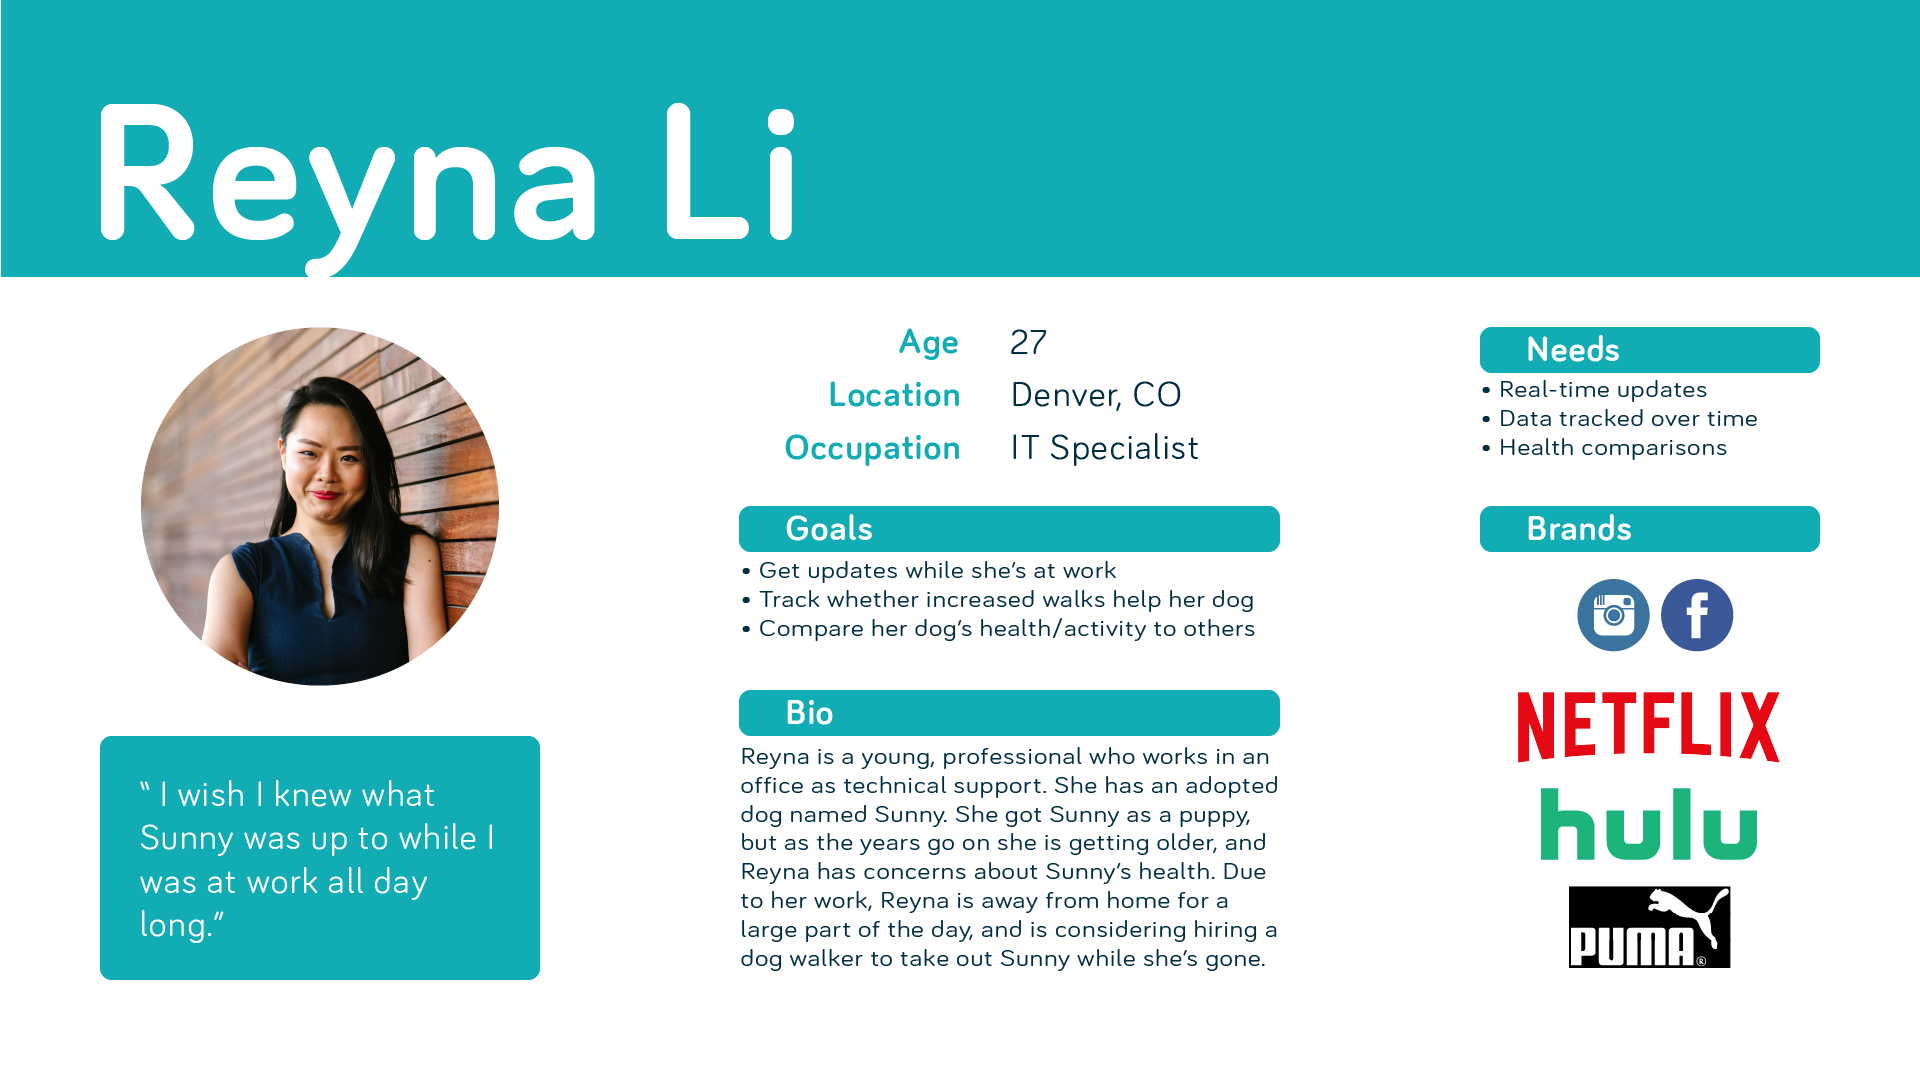 Proto-persona of Reyna Li, a pet owner who wishes that she could track her pet's health better, especially since she's at work for so long.